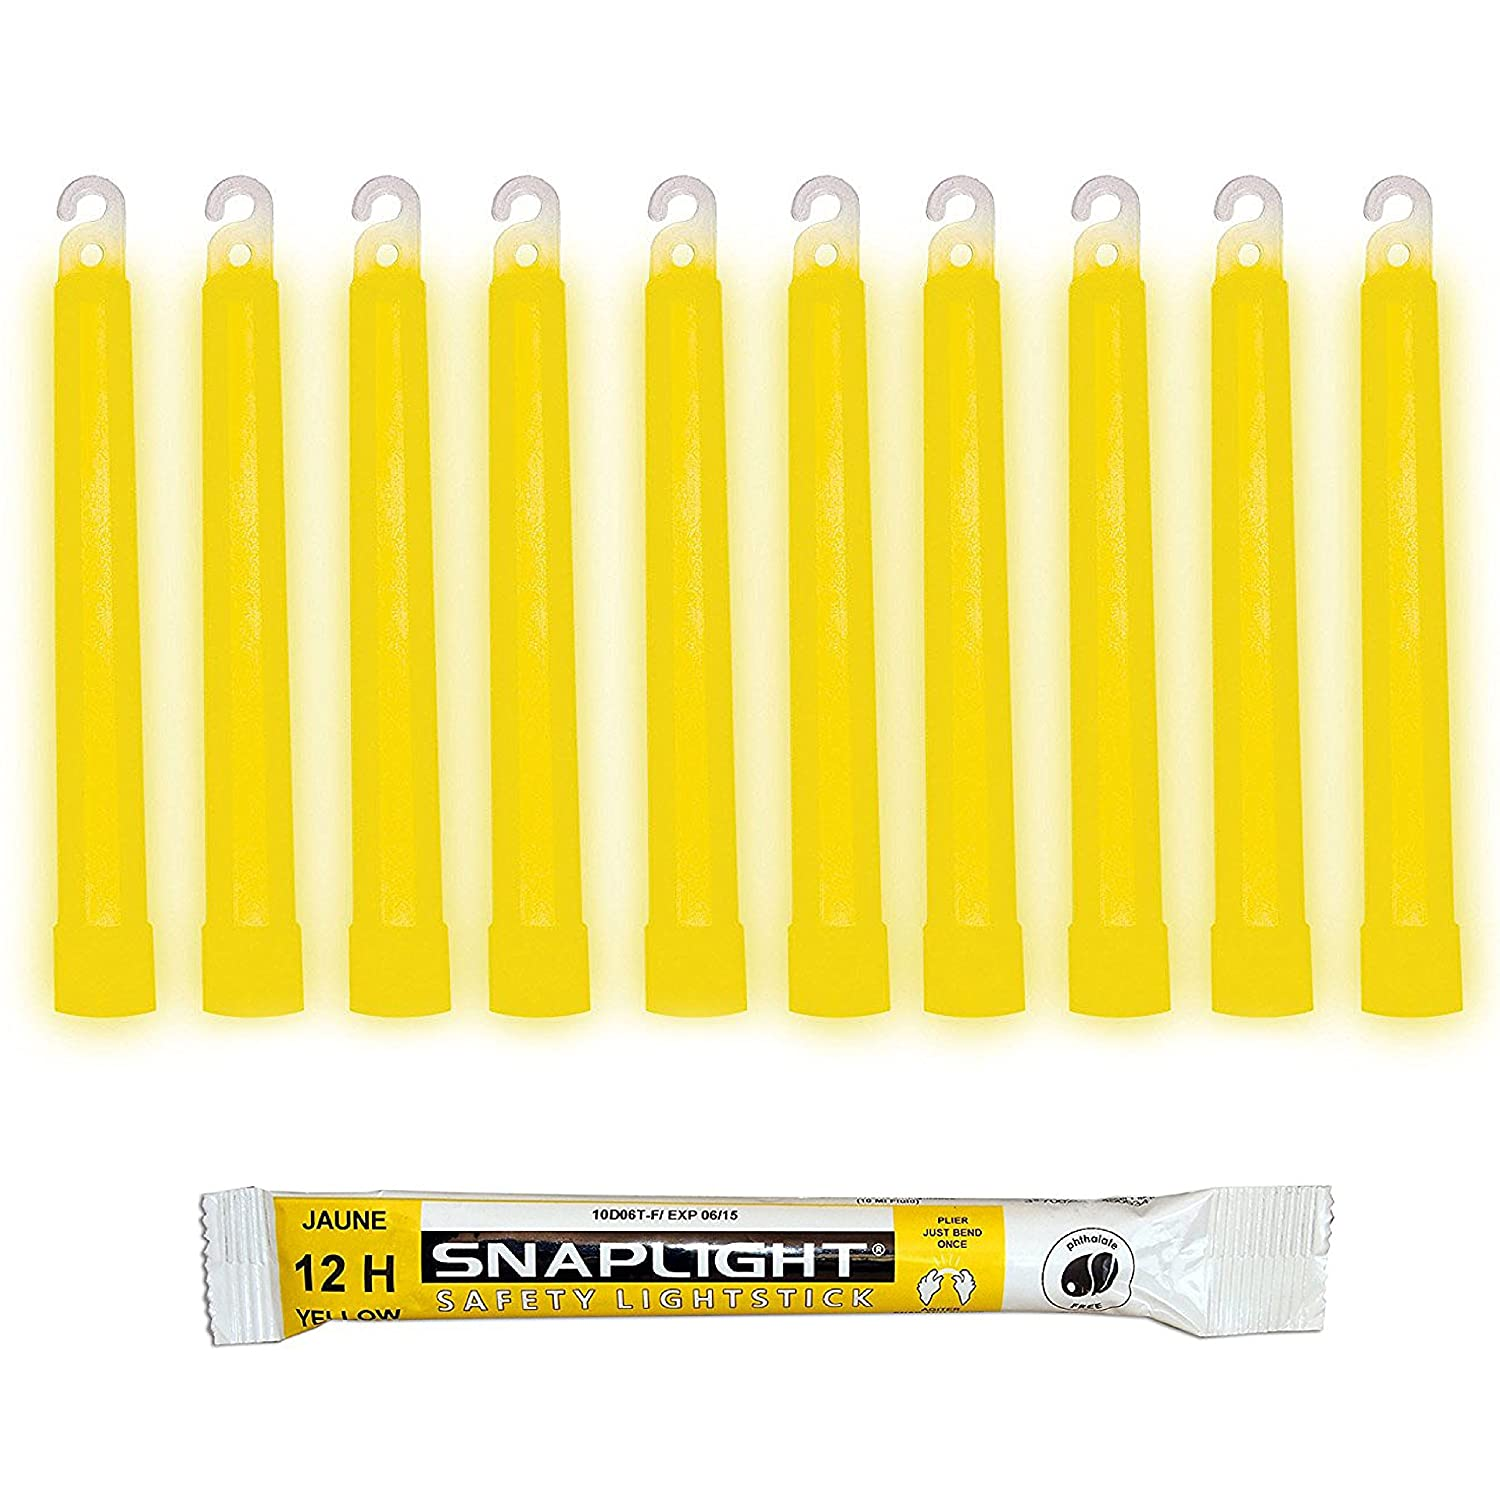 Cyalume SnapLight 6' Industrial Grade Glow Sticks, Multi-Color 20 Pack (10pcs White 8h, 10pcs Yellow 12h) Light Sticks Cyalume Technologies SA8-208099AM